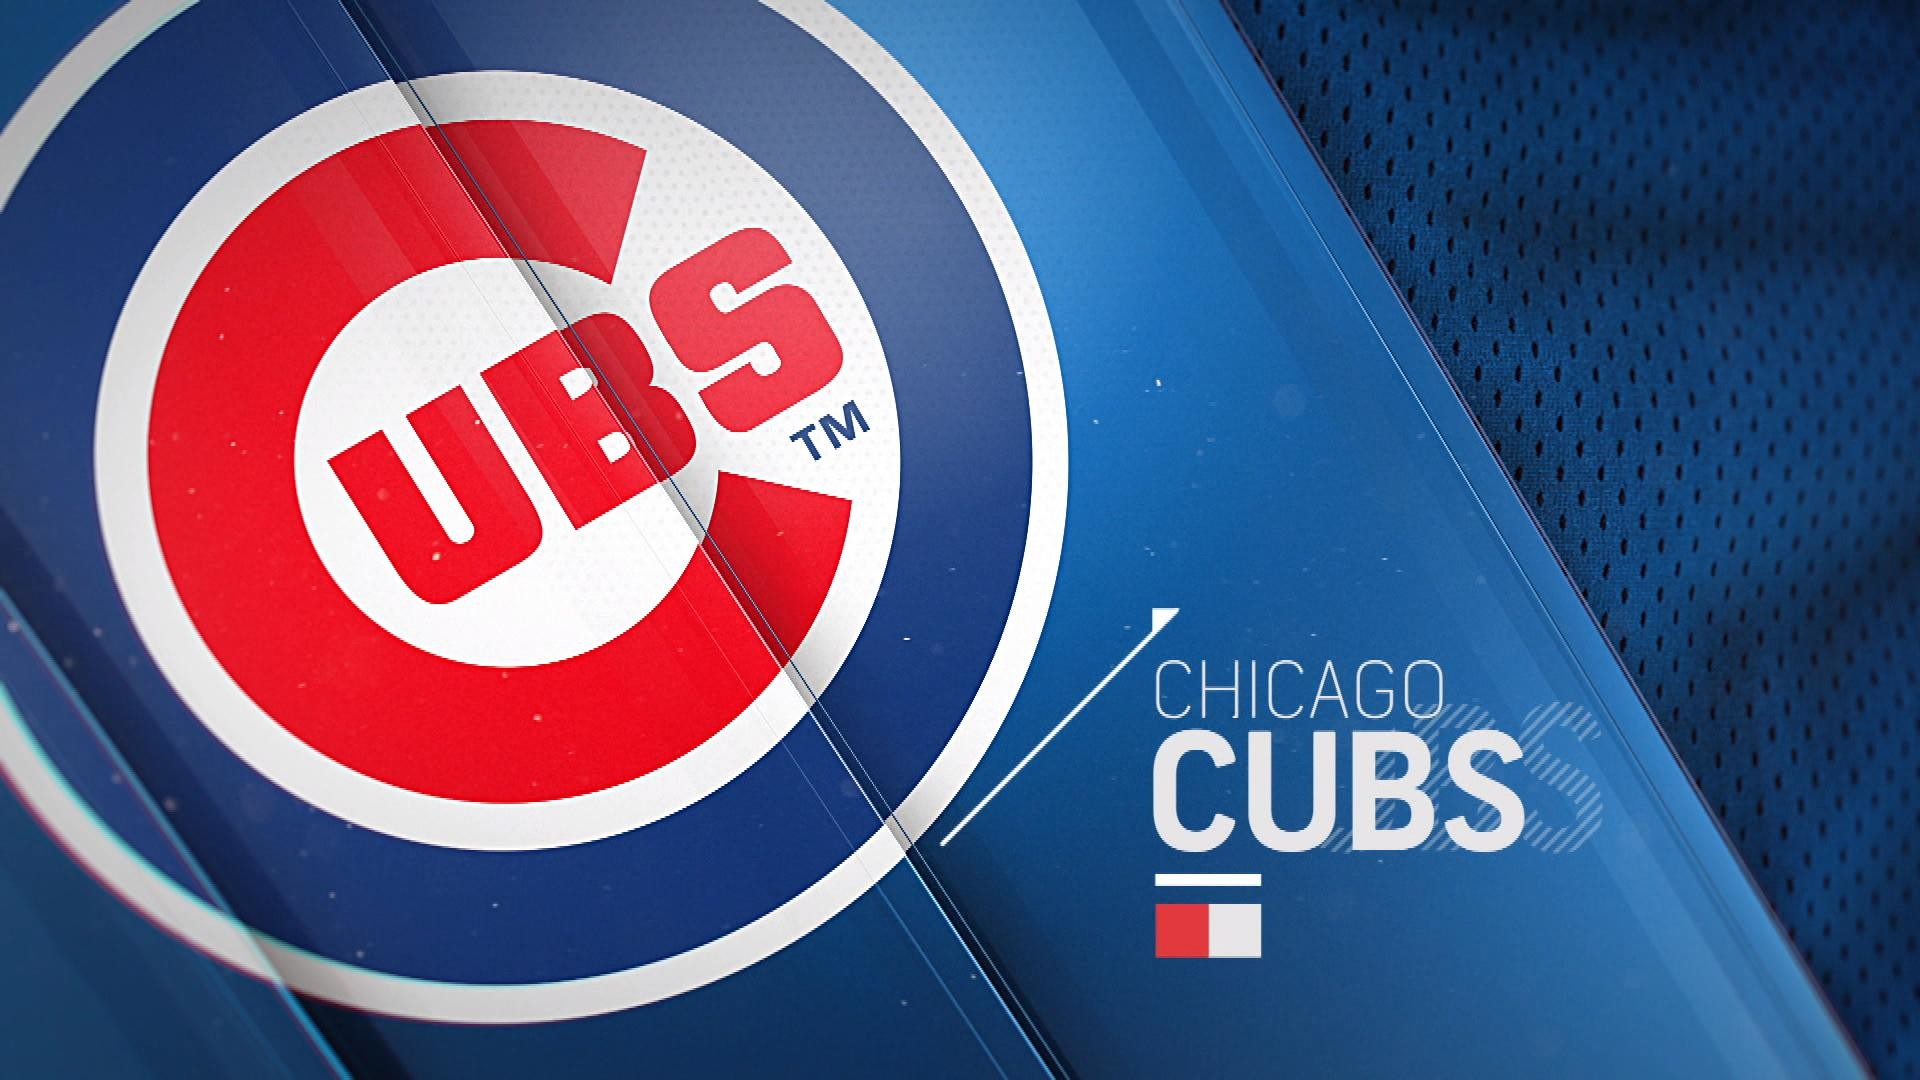 … chicago cubs 2016 postseason wallpaper image gallery hcpr …